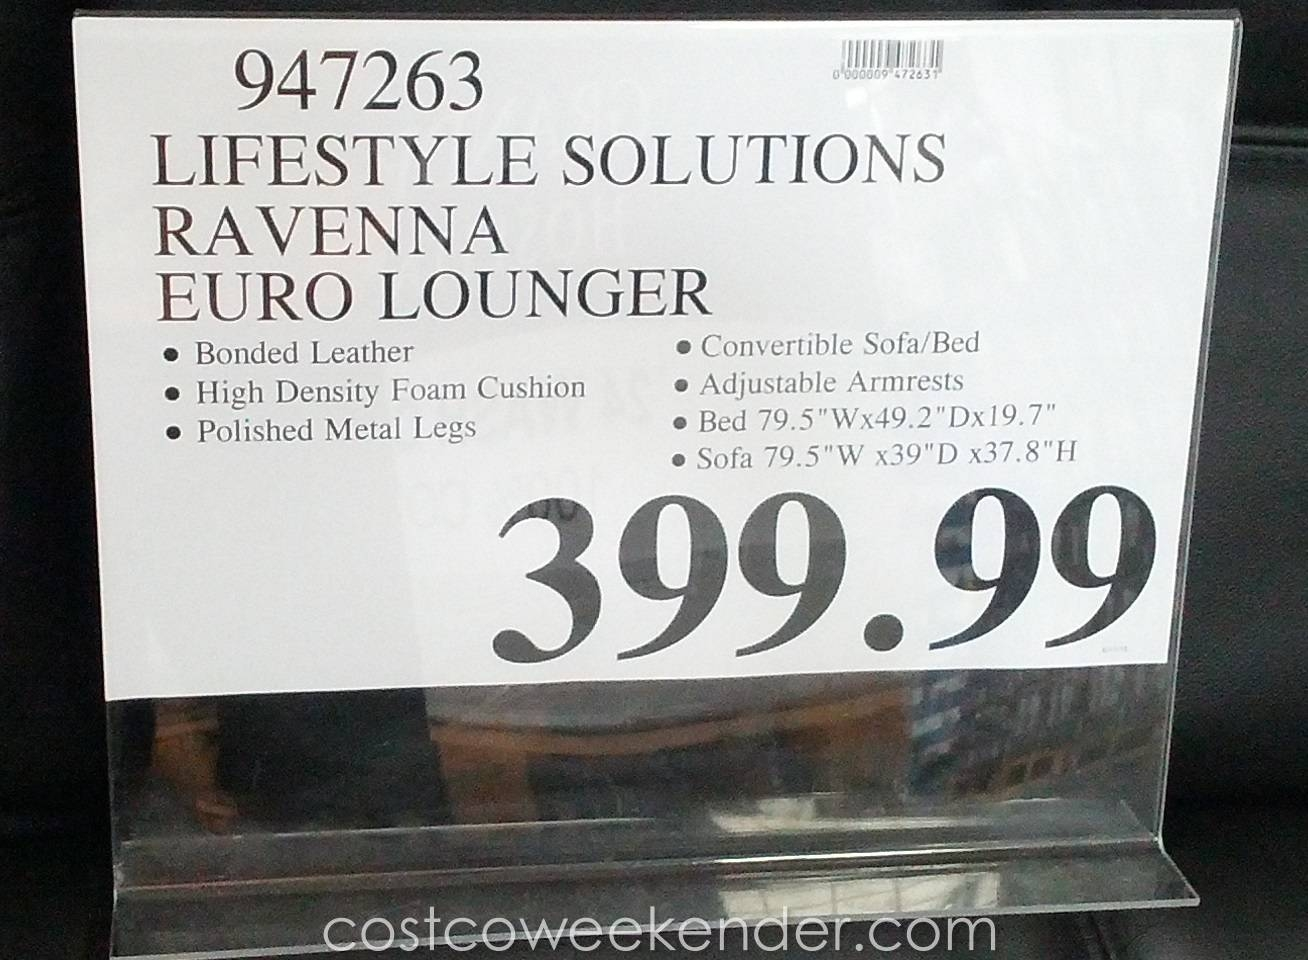 Leather Futon Costco | Roselawnlutheran Intended For Euro Loungers (View 7 of 15)